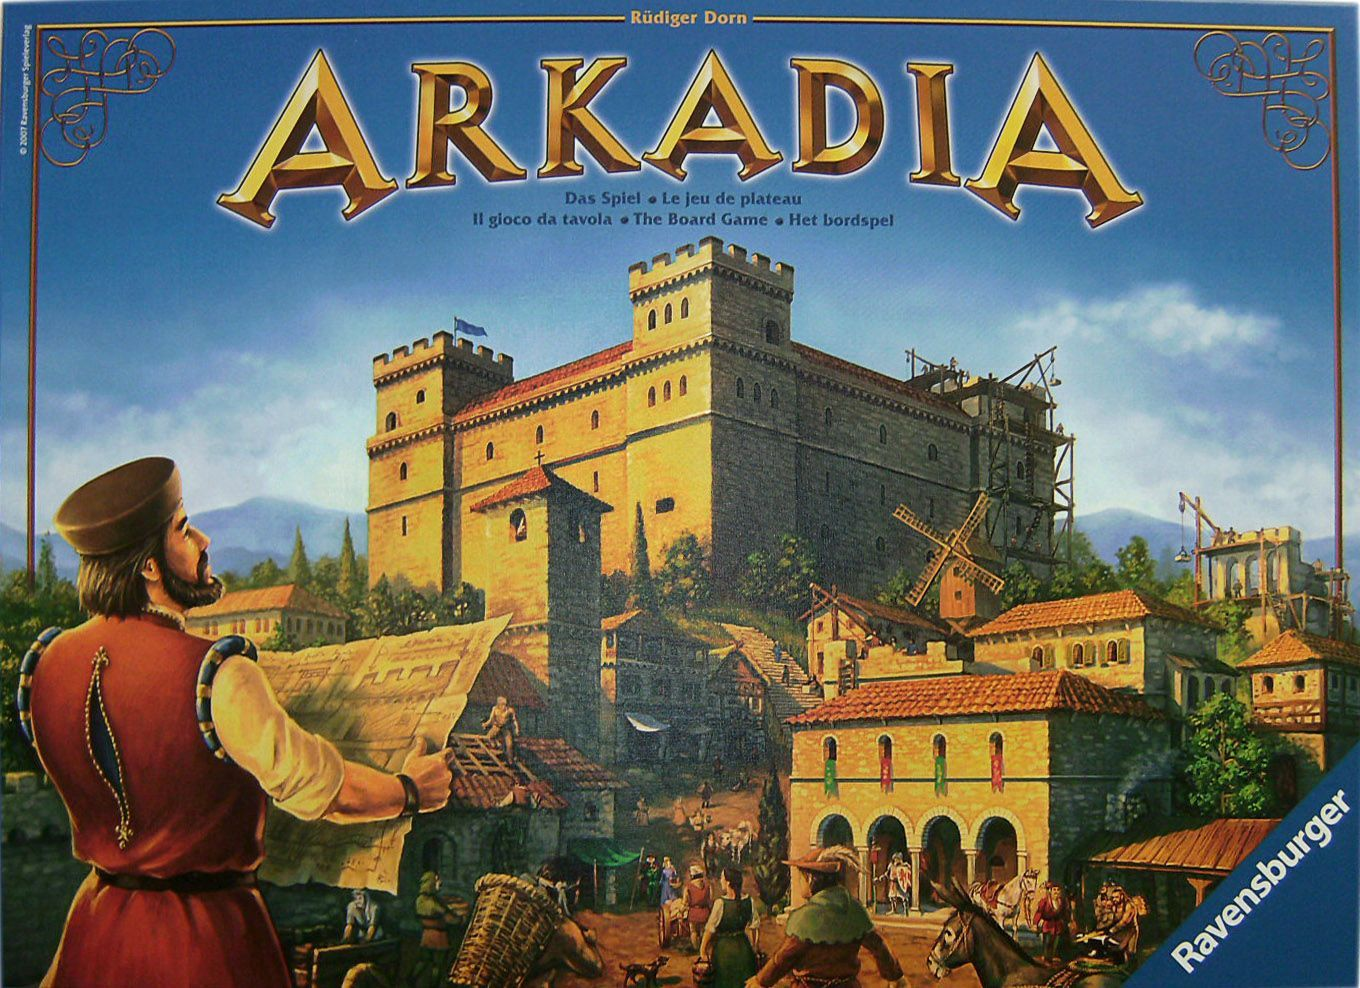 Main image for Arkadia board game